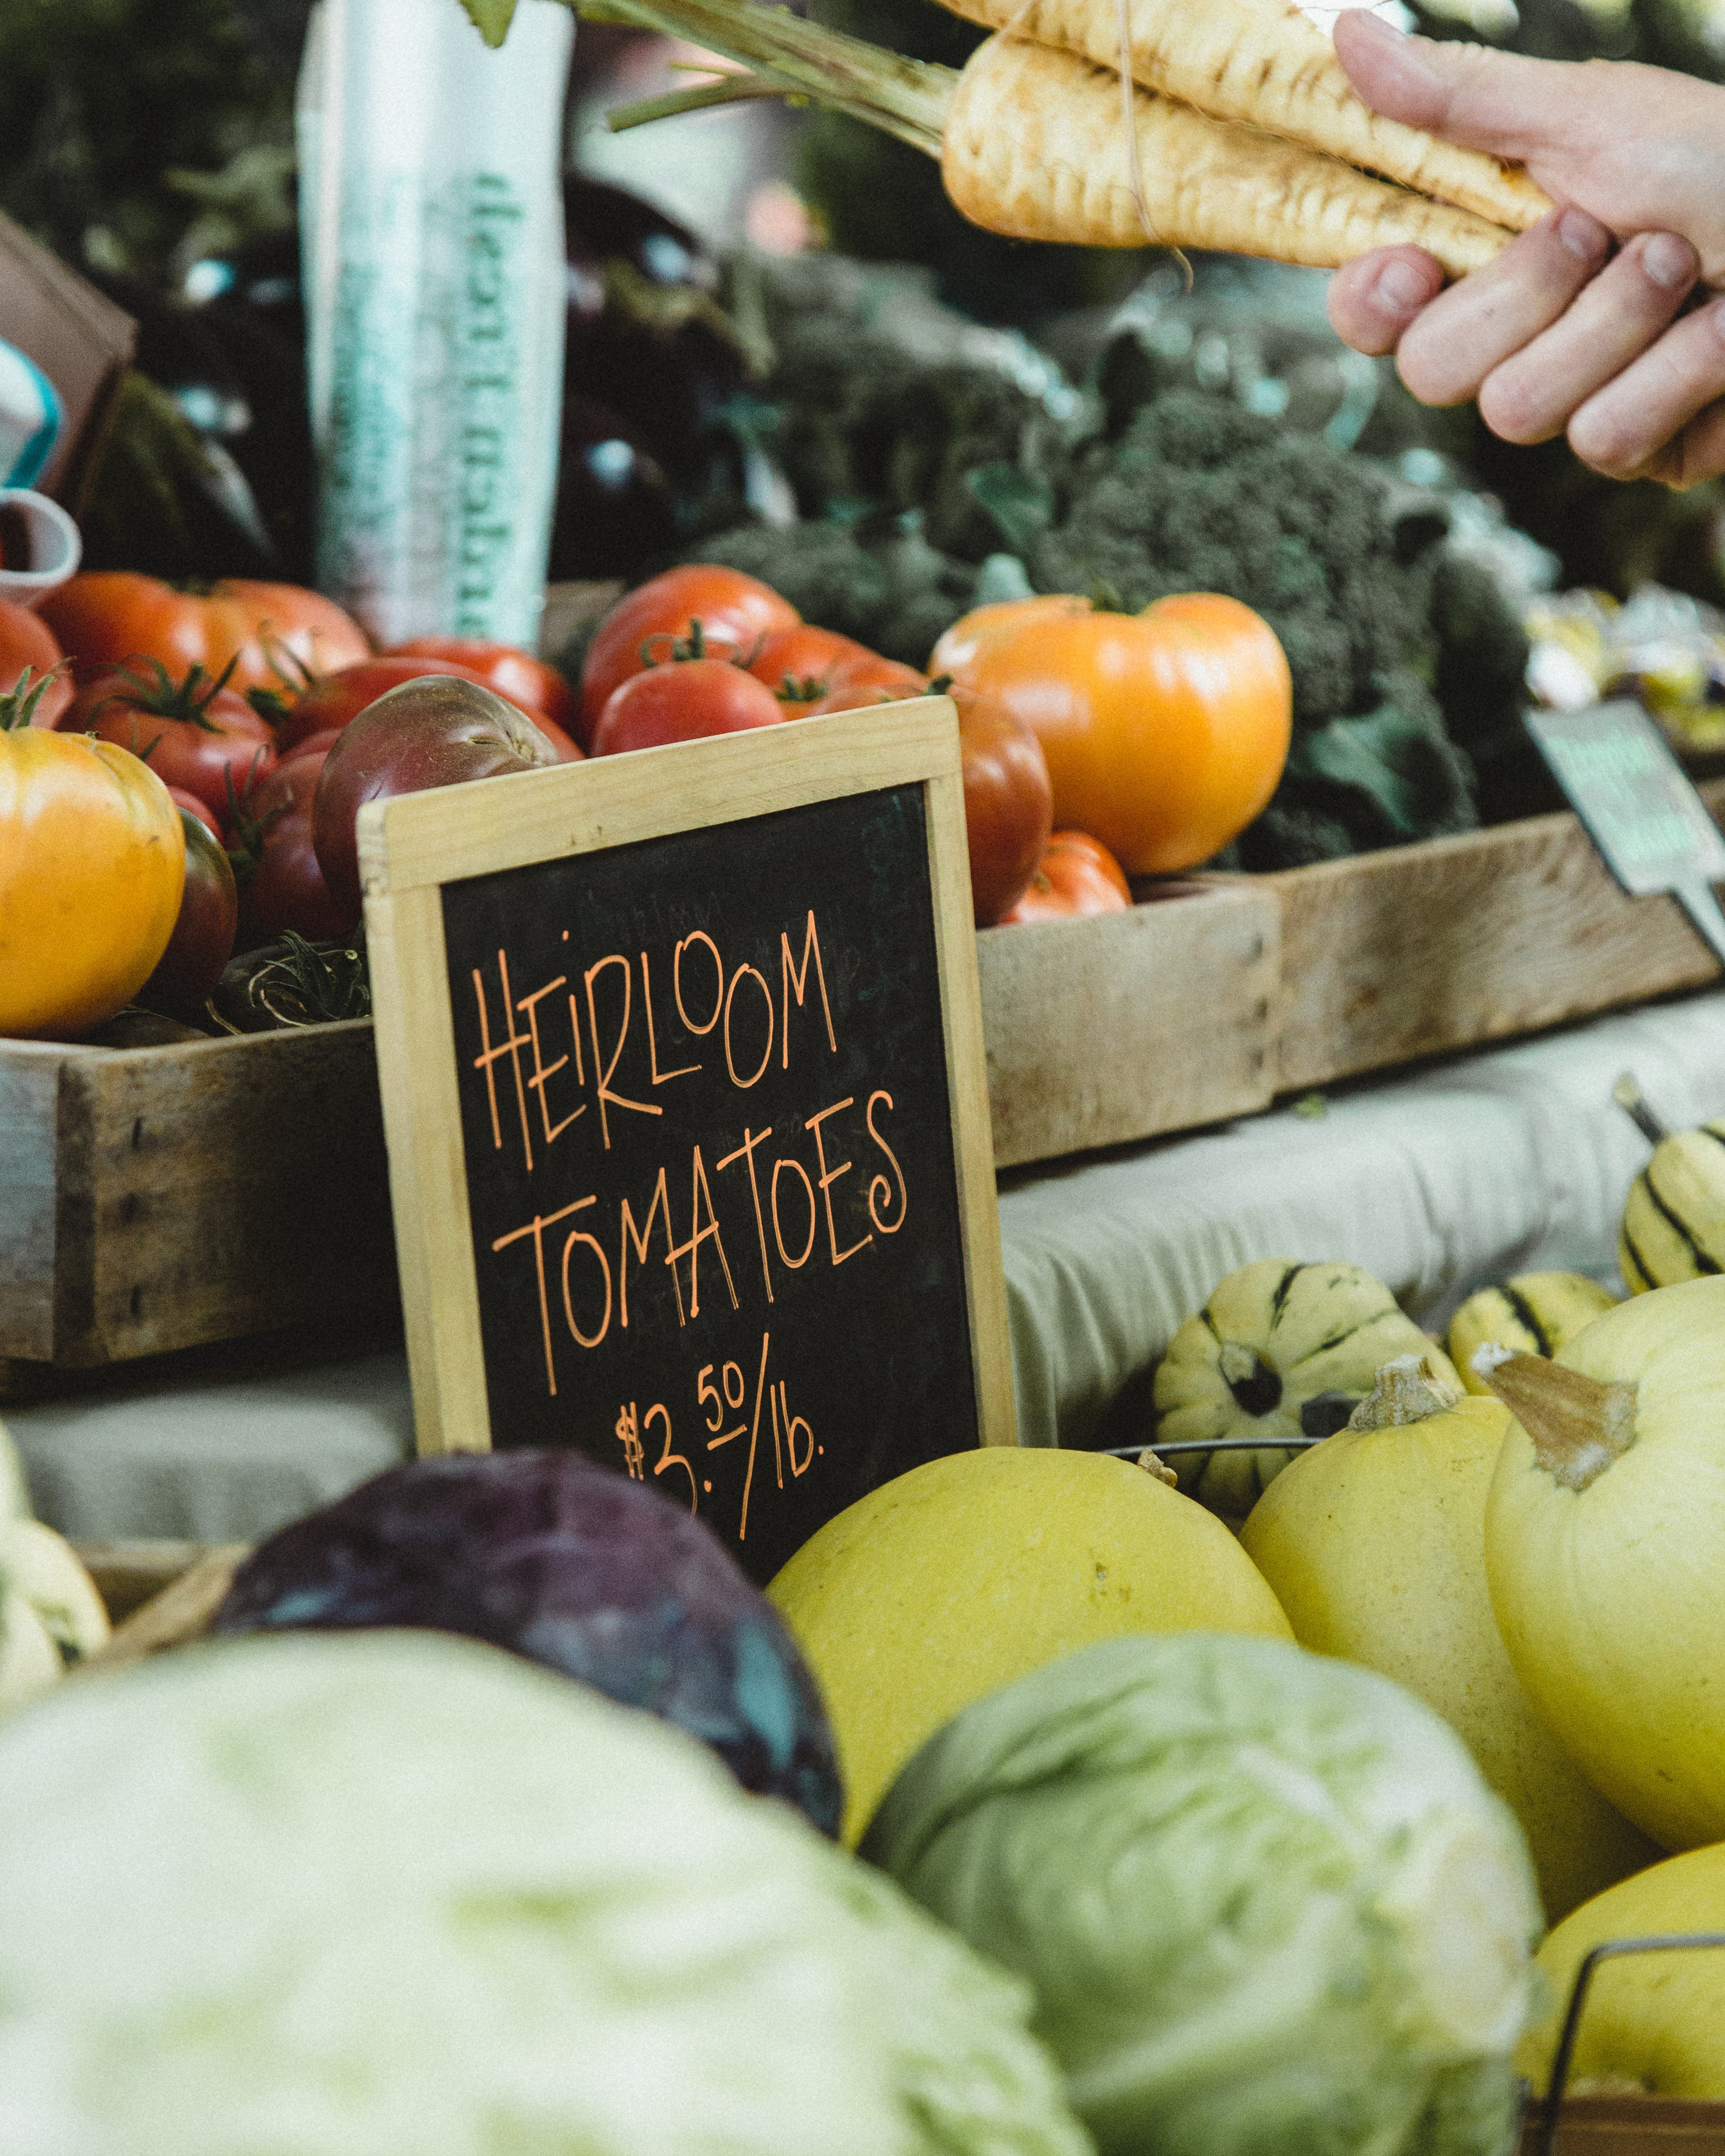 focus photography of heirloom tomatoes board signage